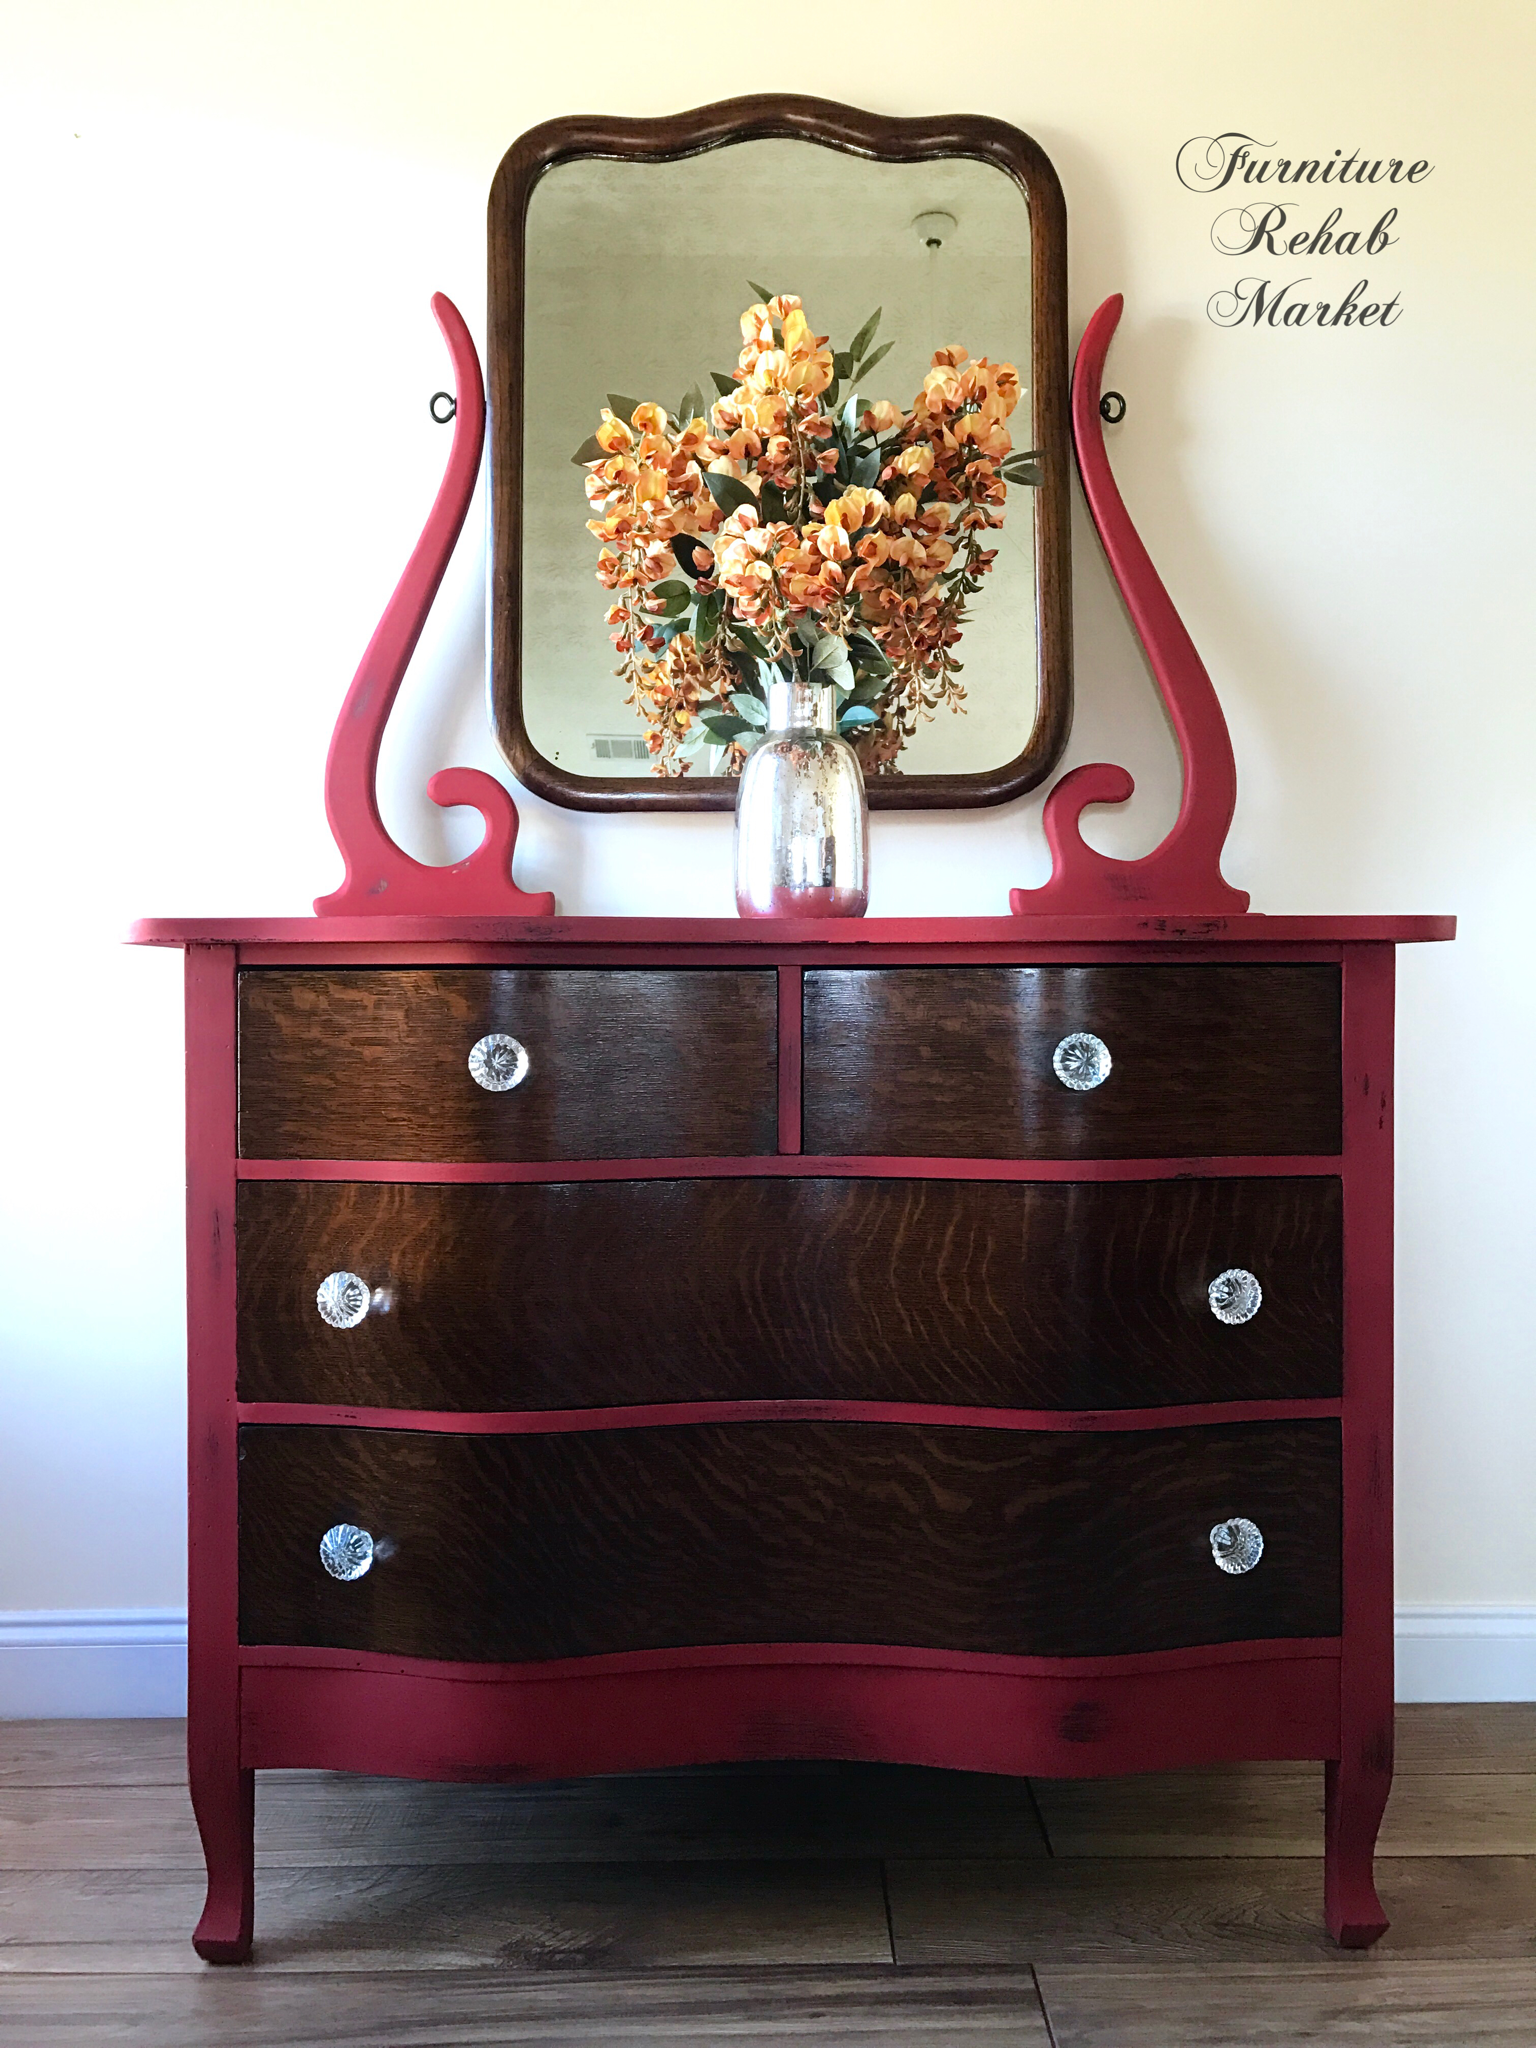 Completely Obsessed With This Beauty Antique Dresser Features Beautiful Serpentine Tiger Oak Drawers